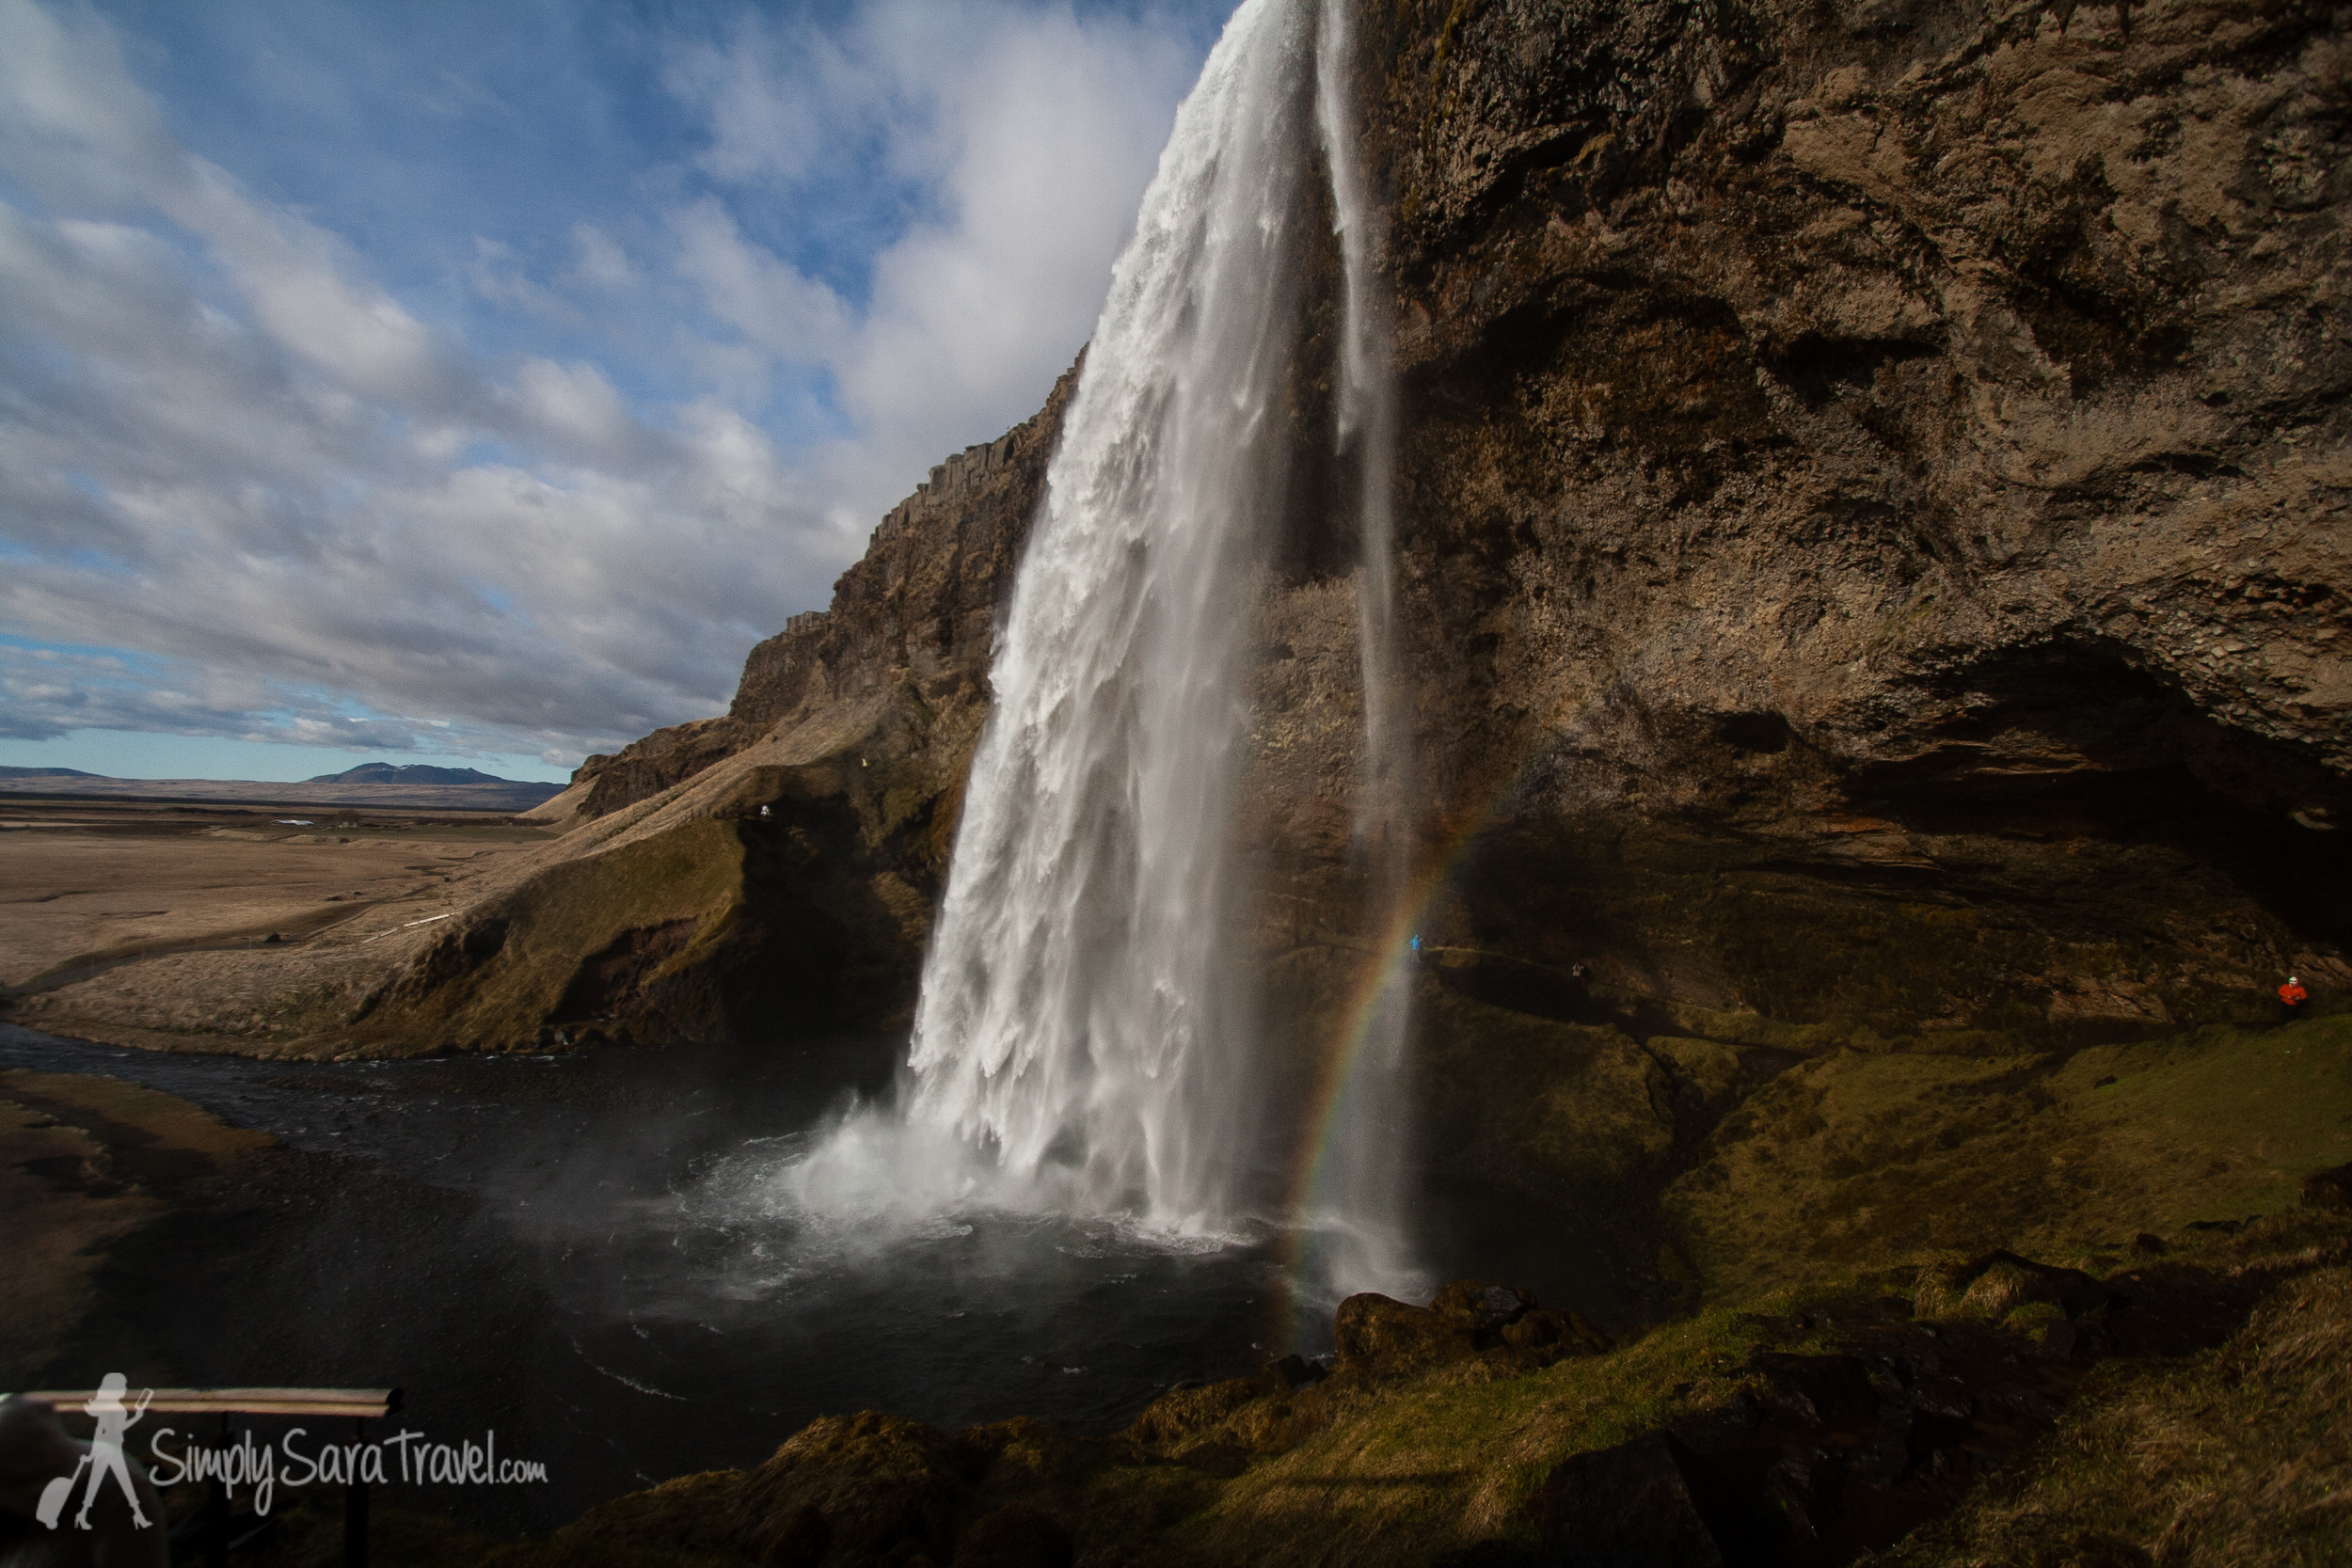 First trip out of France for 2013 was to Iceland. This is the Seljalandsfoss waterfall that we saw on our drive through the southern part of the island. (May 2013)